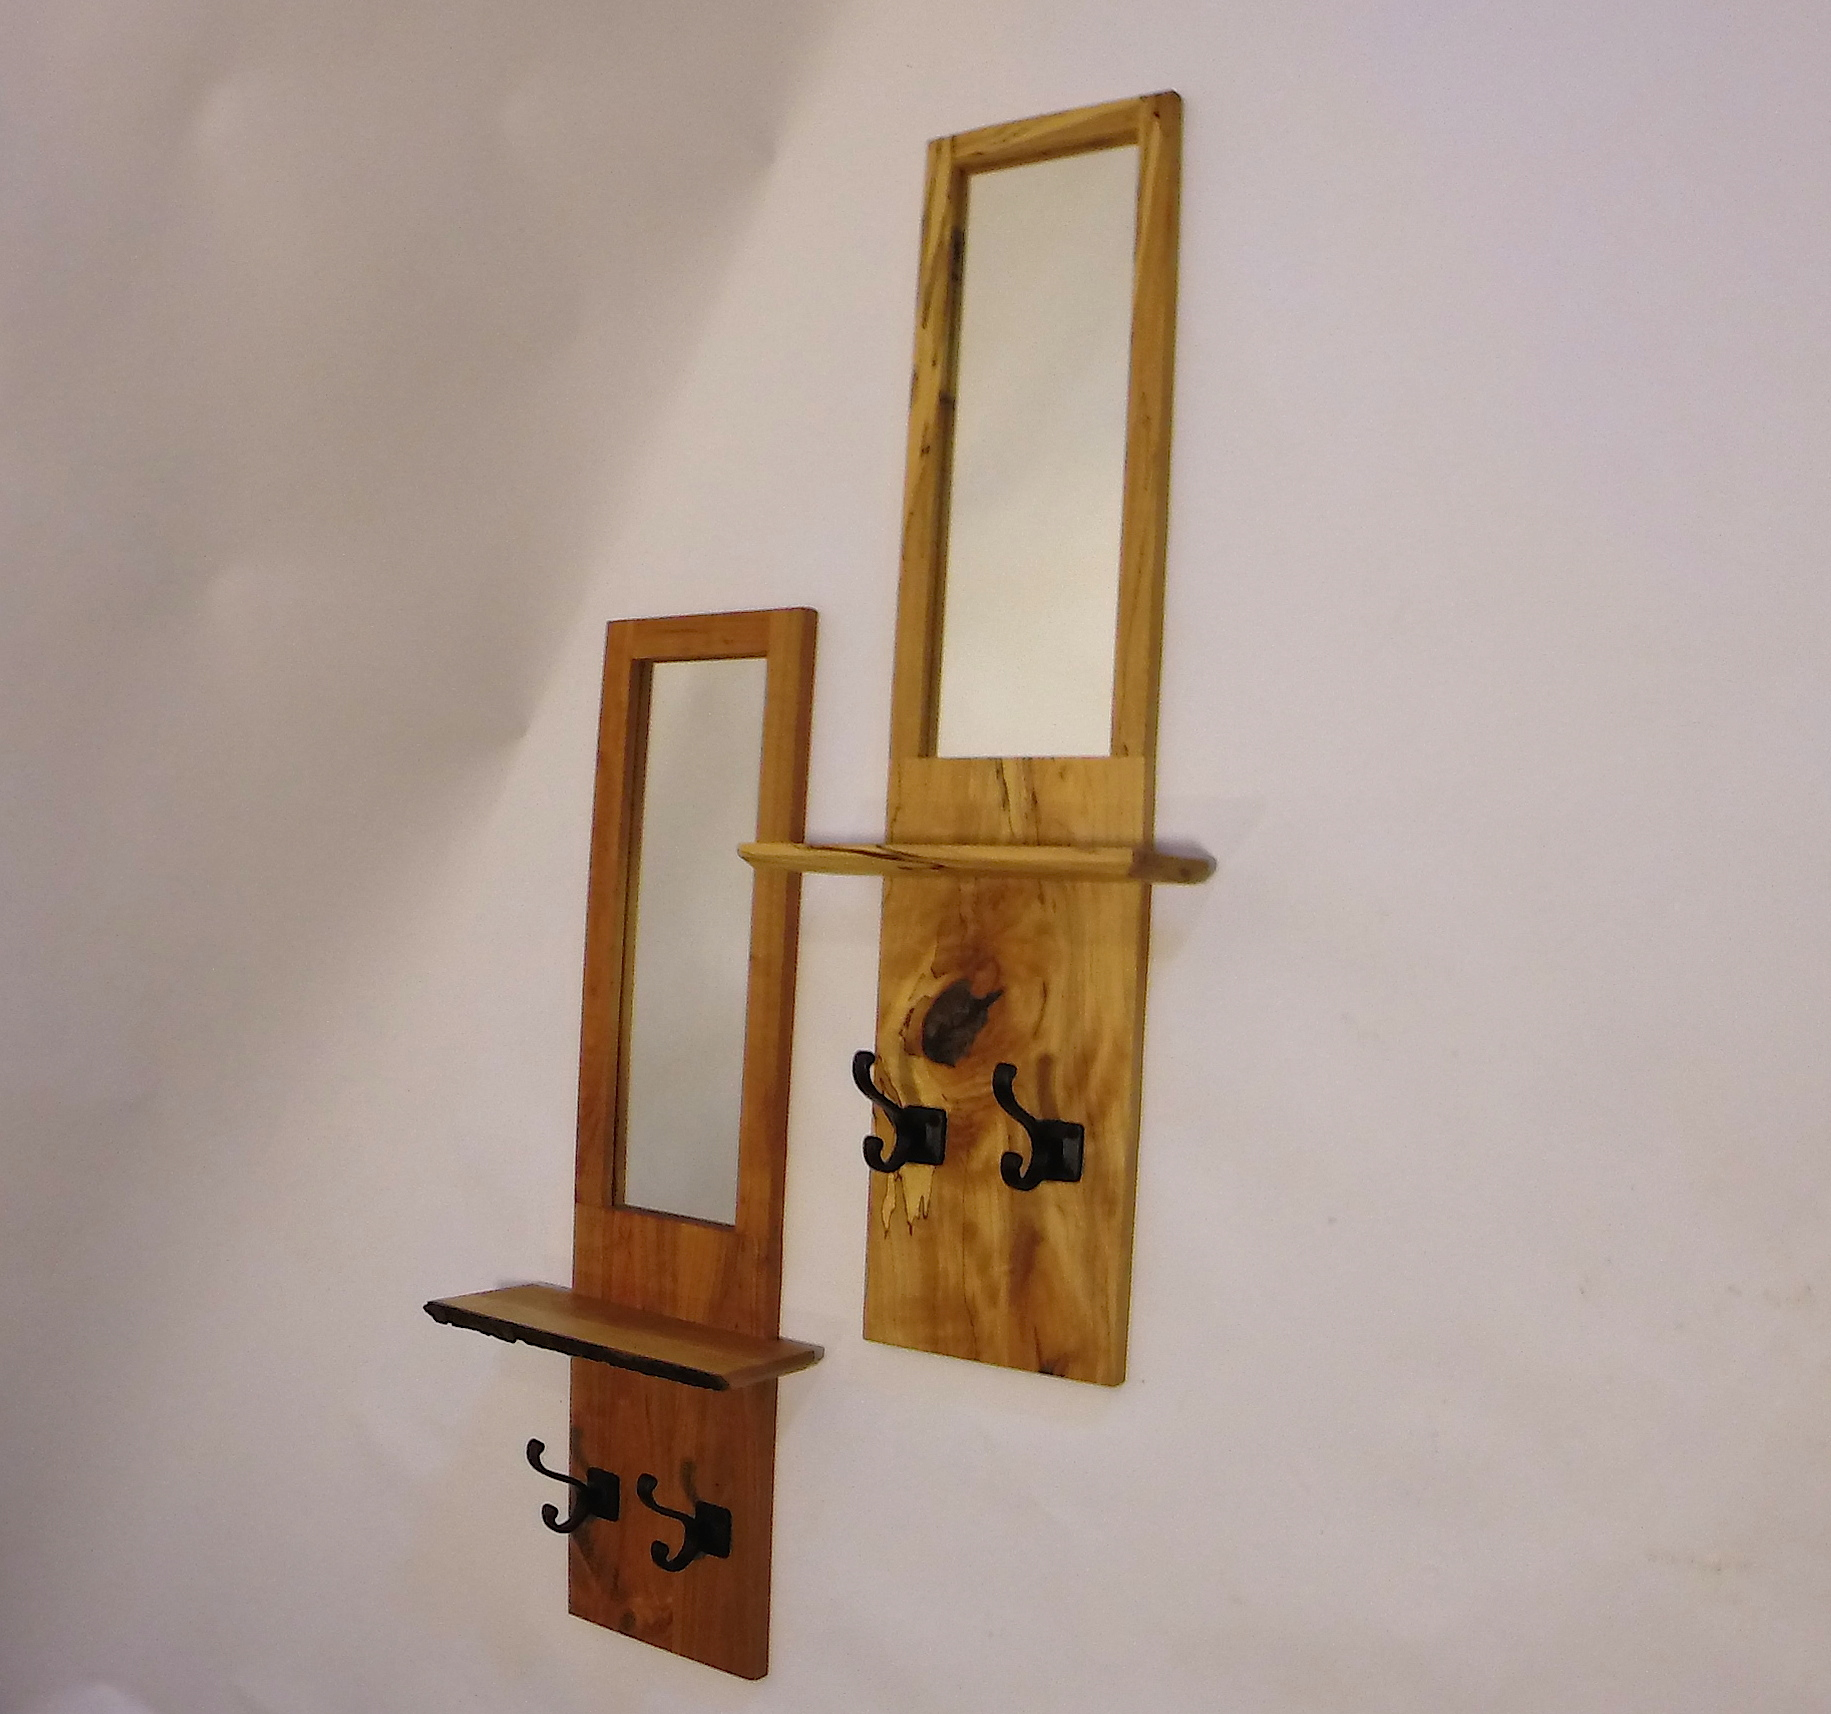 Wall mirrors with shelves and hooks dwyer wood wall mirrors with shelf and hooks amipublicfo Images